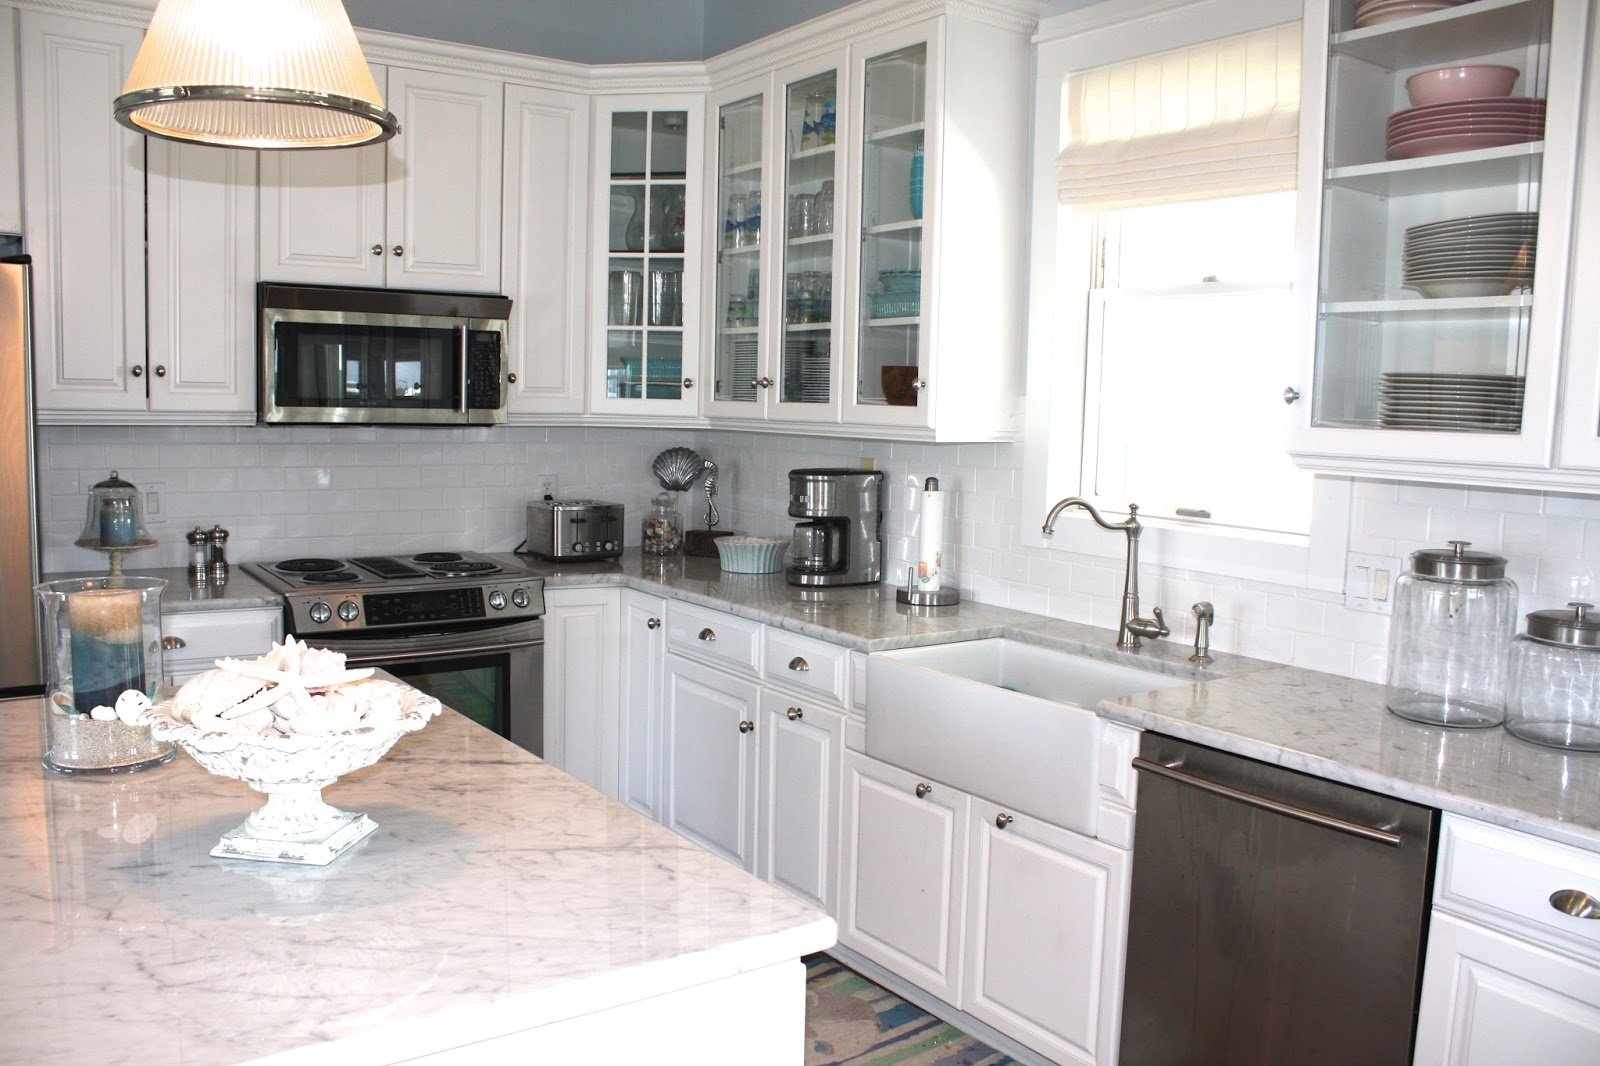 beach cottage kitchen - Beach Kitchen Design Ideas